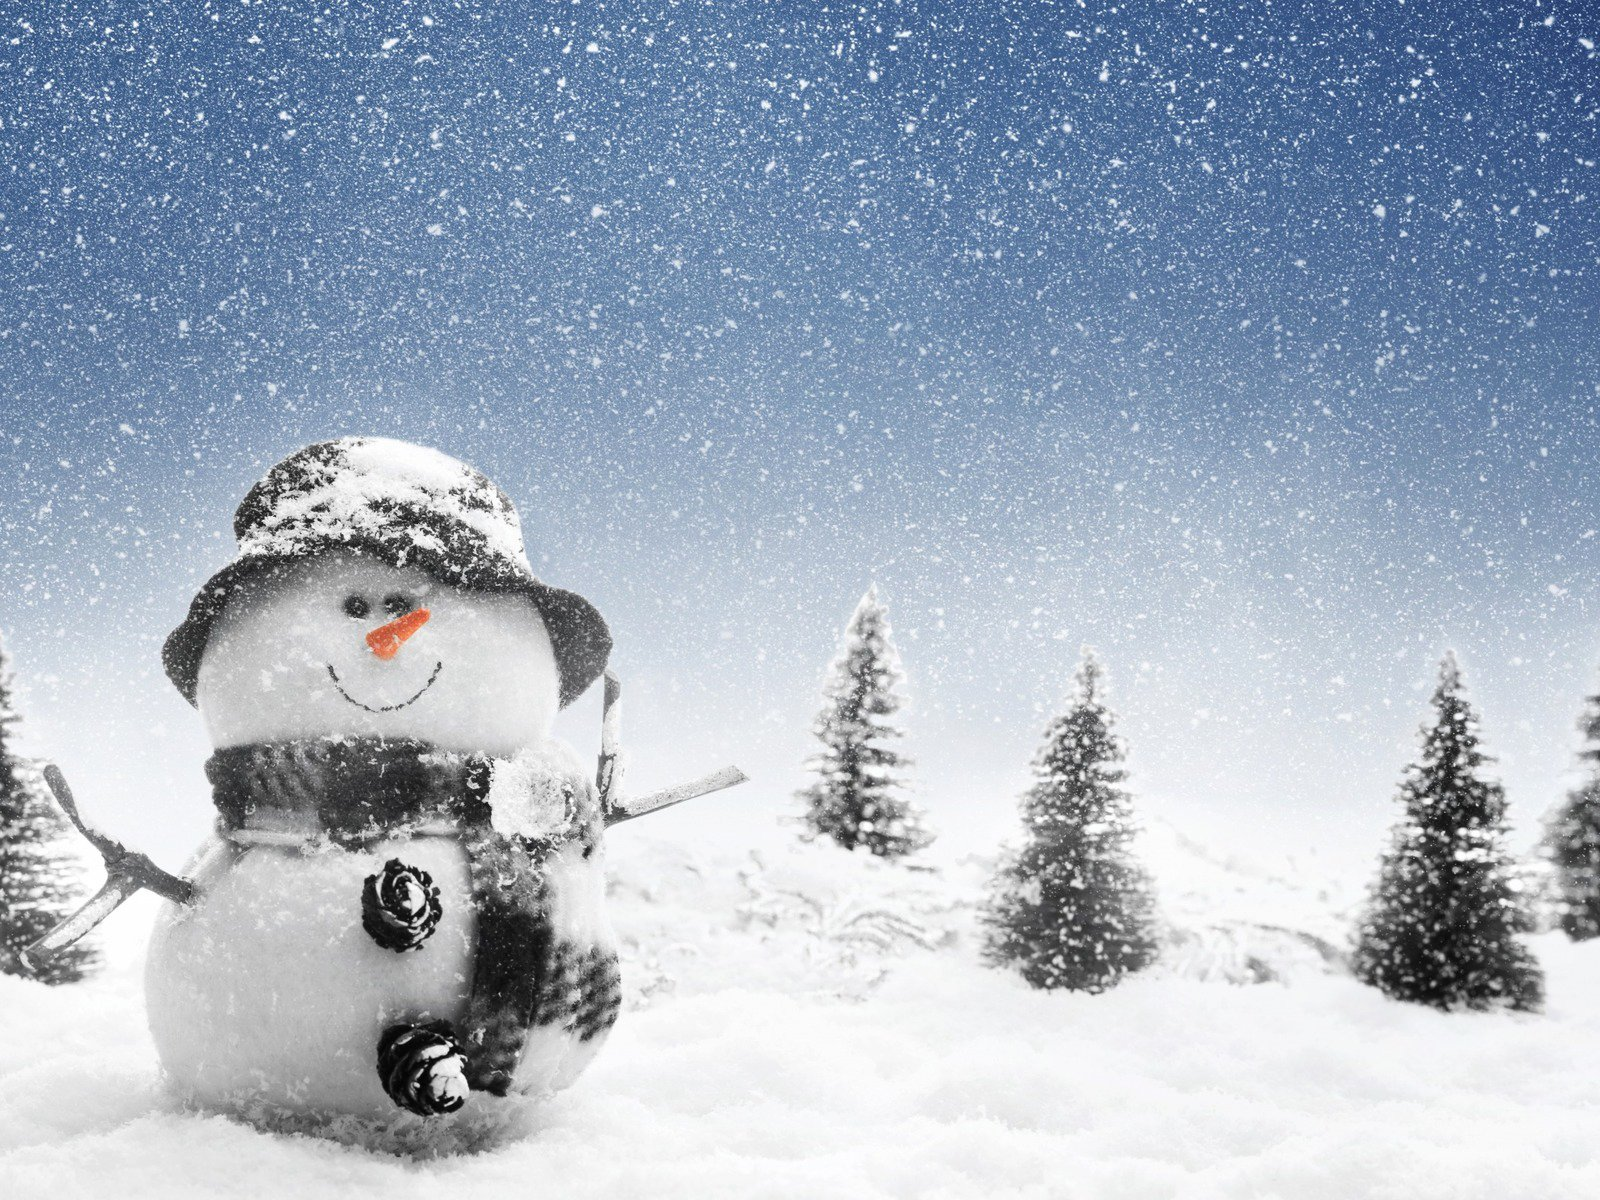 Gallery For gt Cute Winter Hd Wallpapers 1600x1200